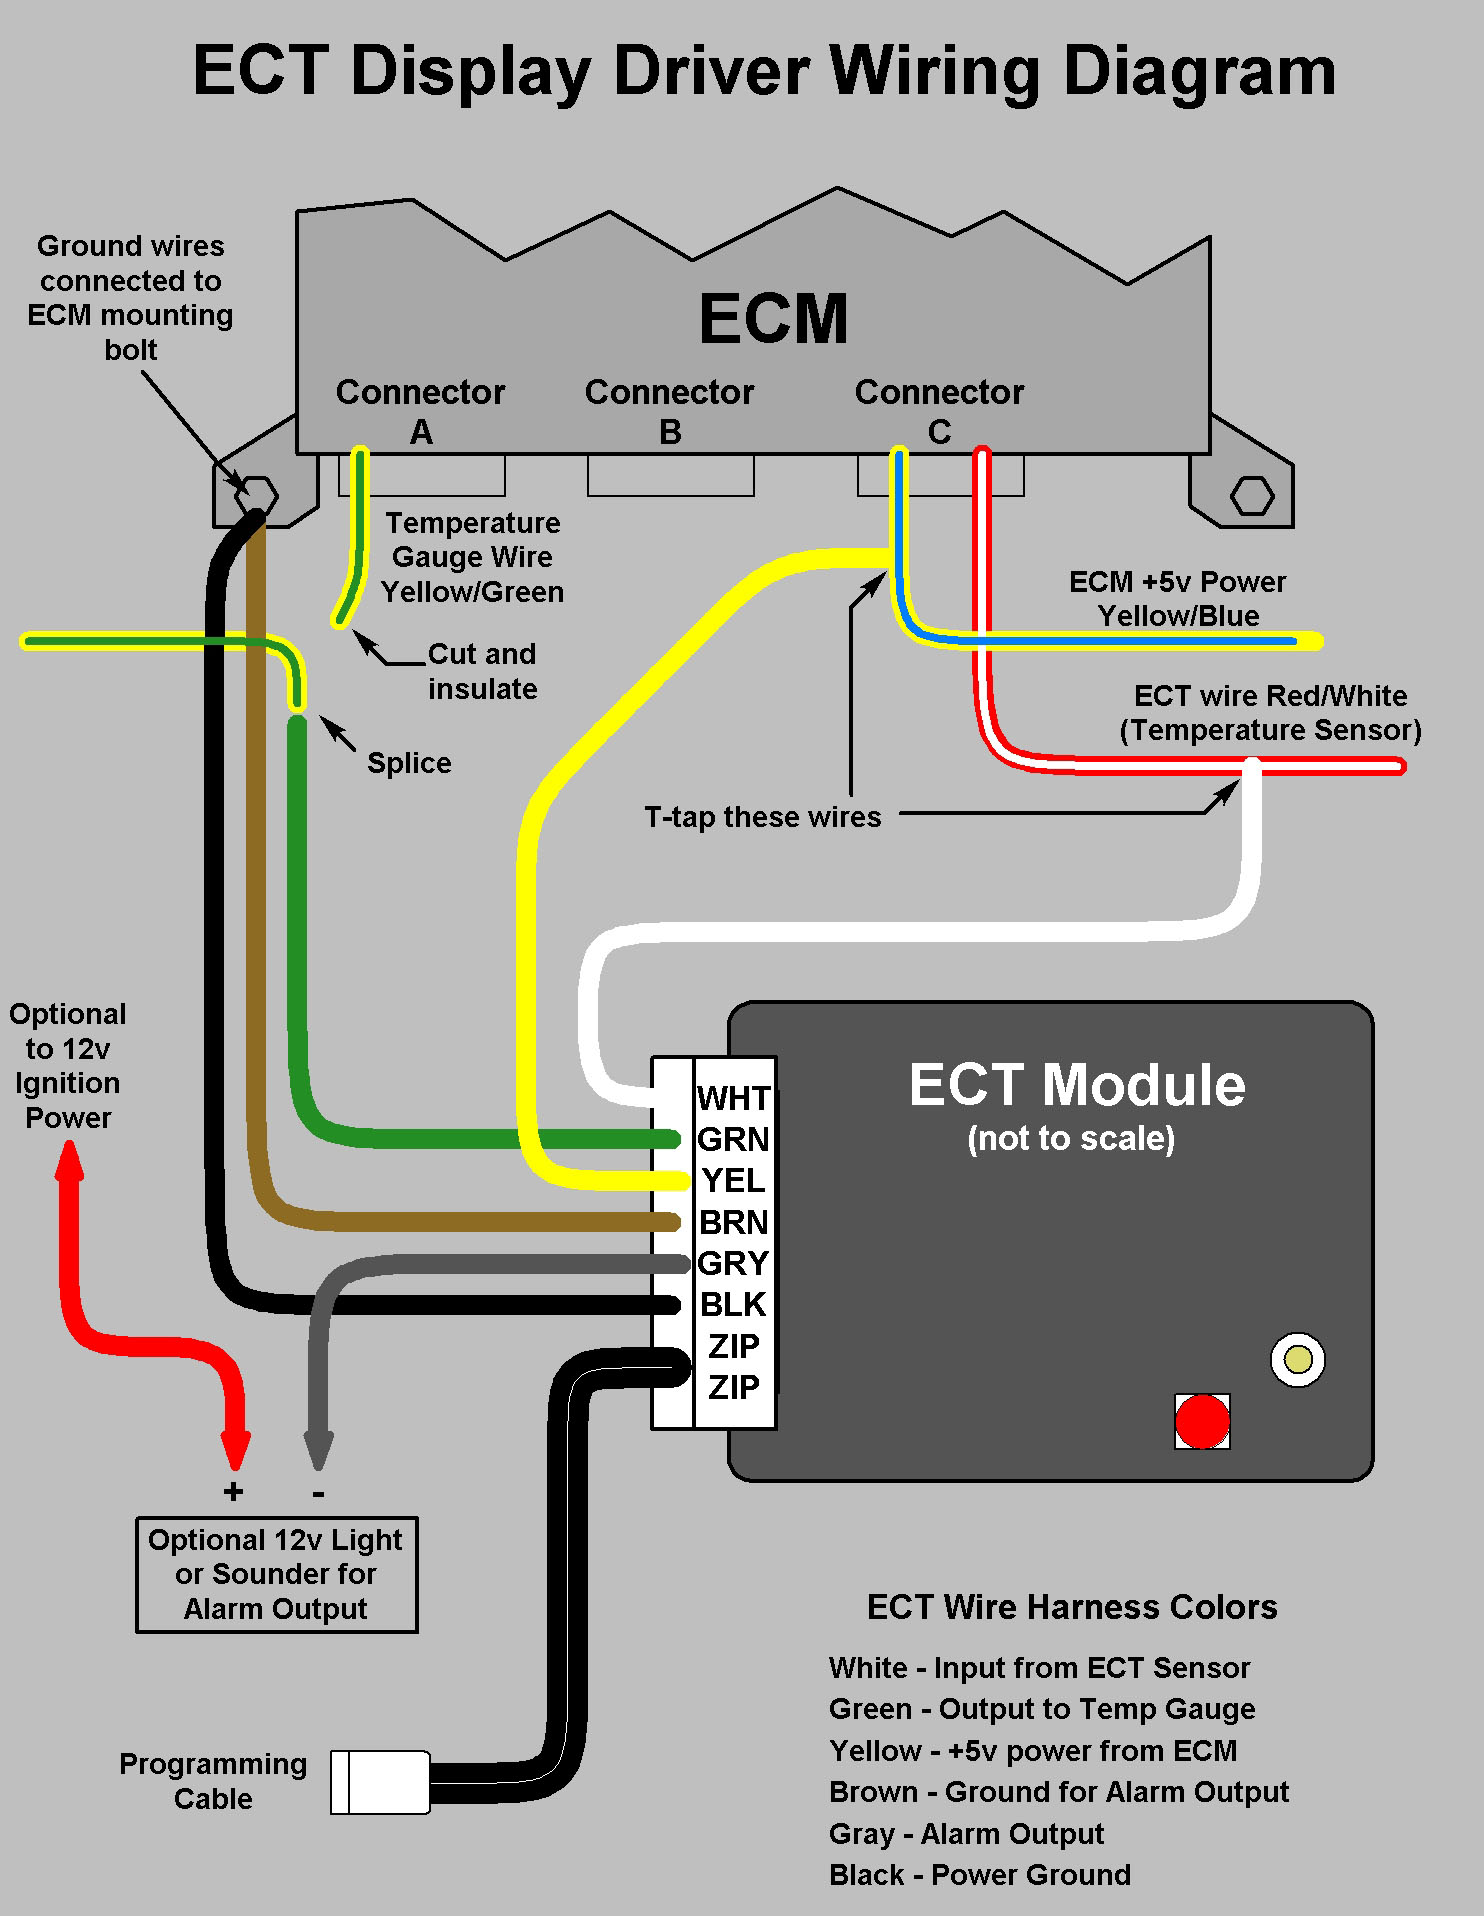 ECT wiring diagram ems wiring diagram medical diagram \u2022 free wiring diagrams life ems 8860 wiring diagram at panicattacktreatment.co